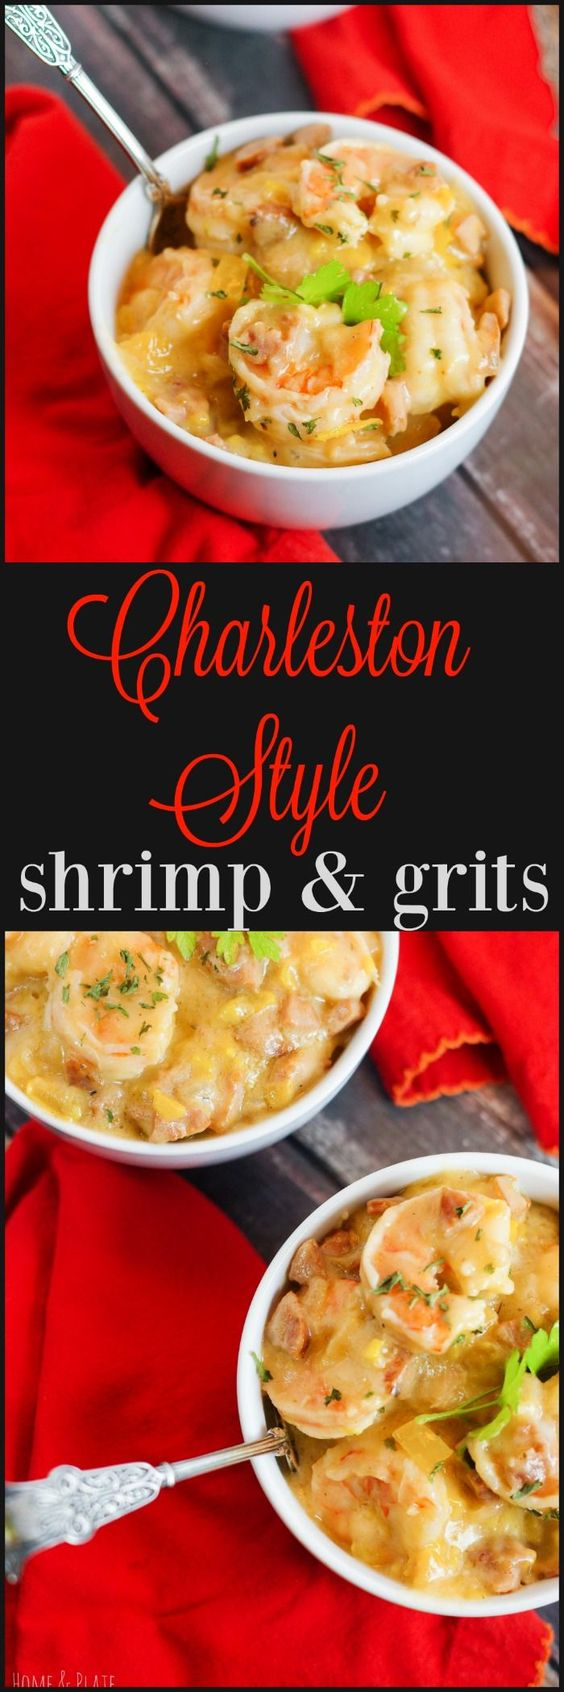 Charleston Style Shrimp & Grits   www.homeandplate.com   The shrimp is pink and tender, the course grits are creamy and cheesy and the heat from the andouille sausage will warm your belly.